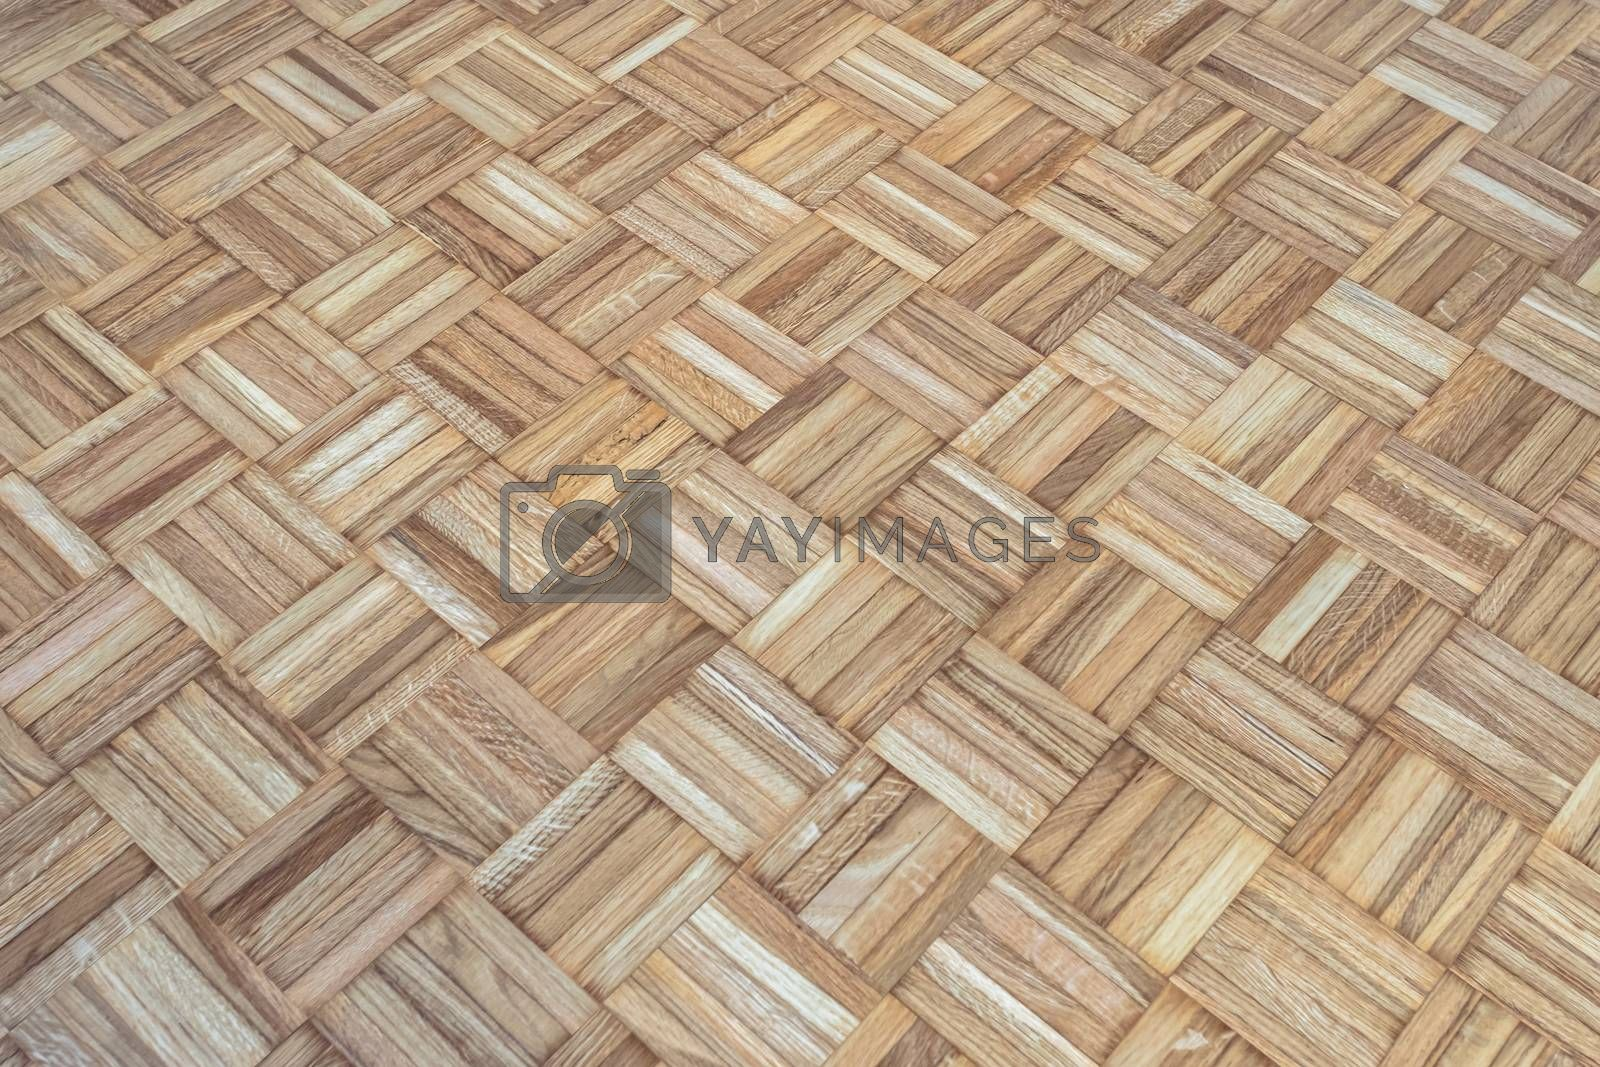 Oak square parquet floor texture. It can be used as background.